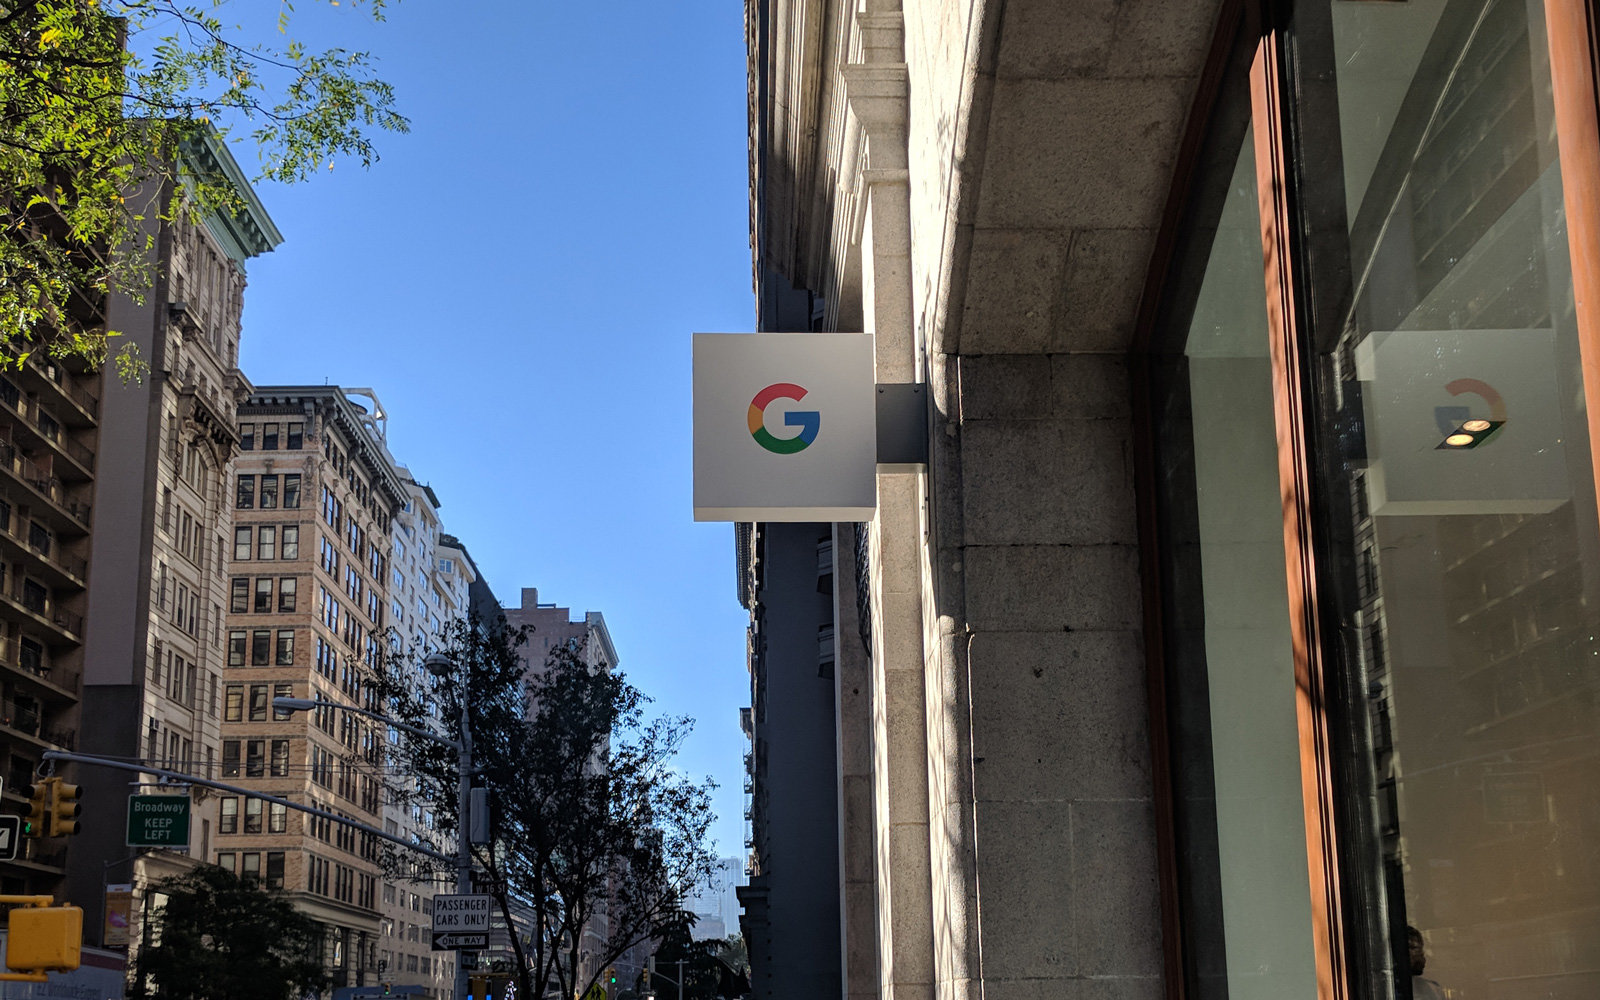 Google store in New York City.